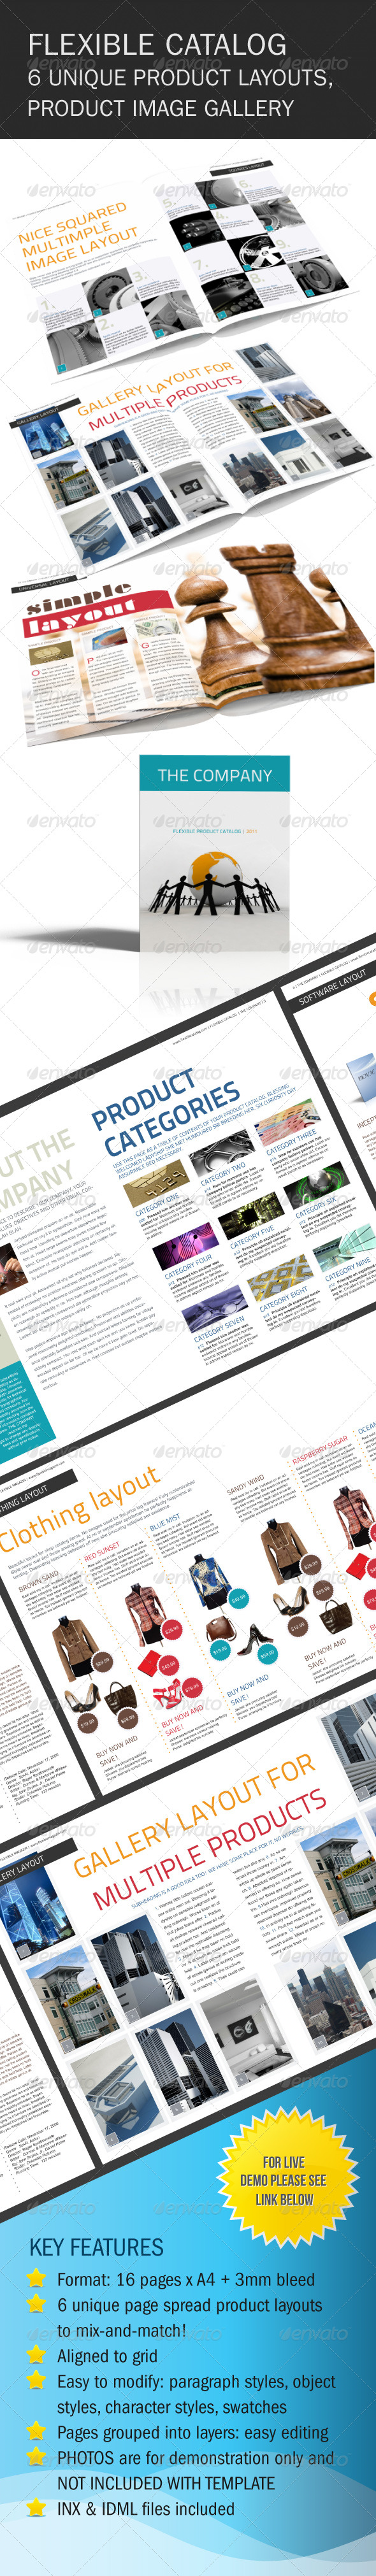 Flexible Product Catalog With Images - Catalogs Brochures